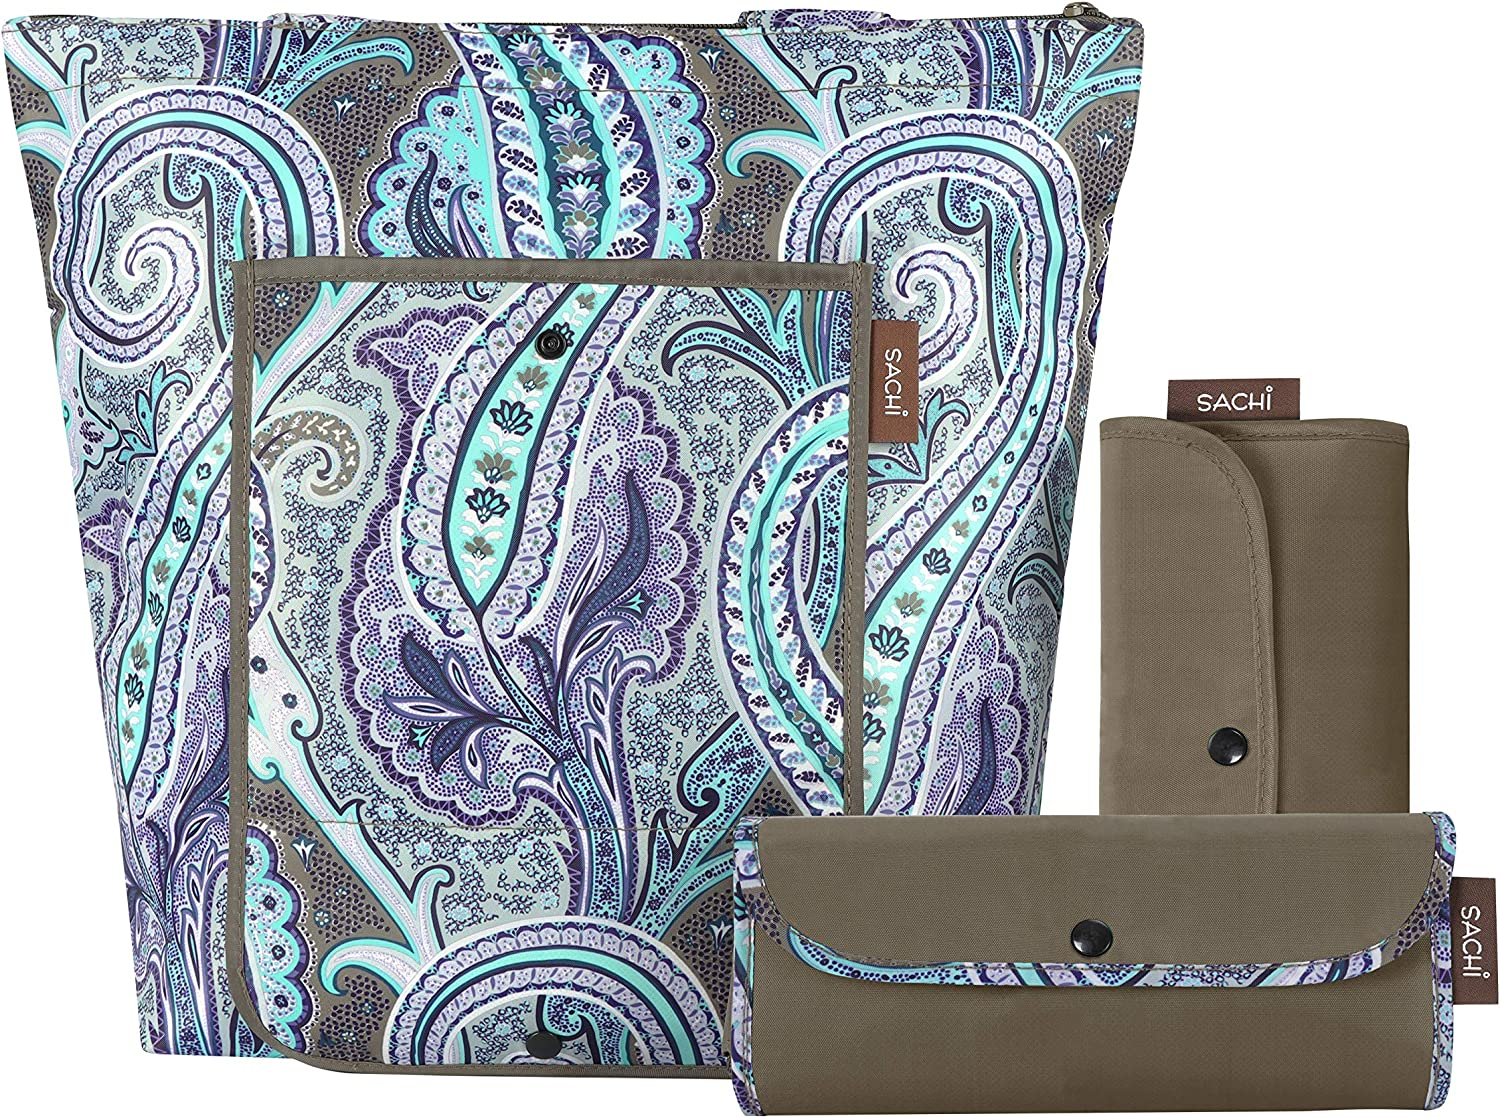 SACHI 3 Piece Market Tote Set – Insulated Thermal Reusable Grocery Bags for Cold and Hot Foods – Lightweight, Portable and Fold-able (Brown Damask Paisley)